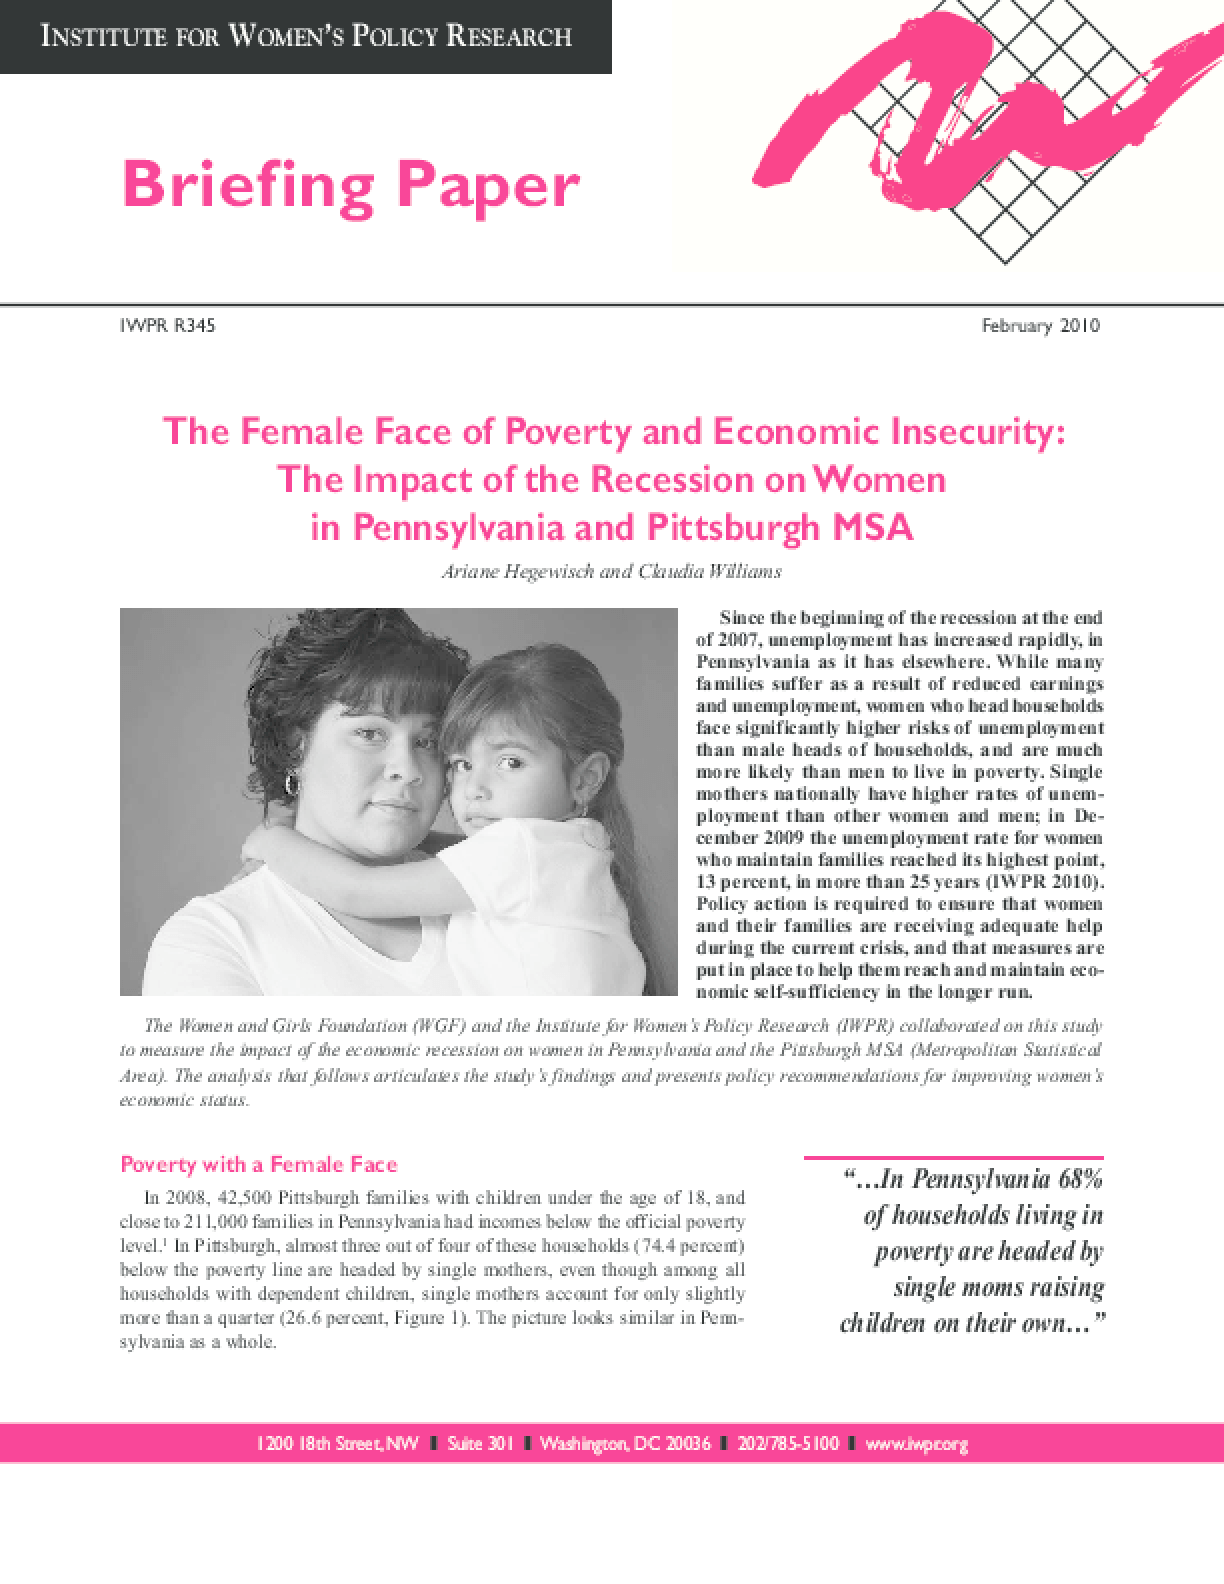 The Female Face of Poverty and Economic Insecurity: The Impact of the Recession on Women in Pennsylvania and Pittsburgh MSA